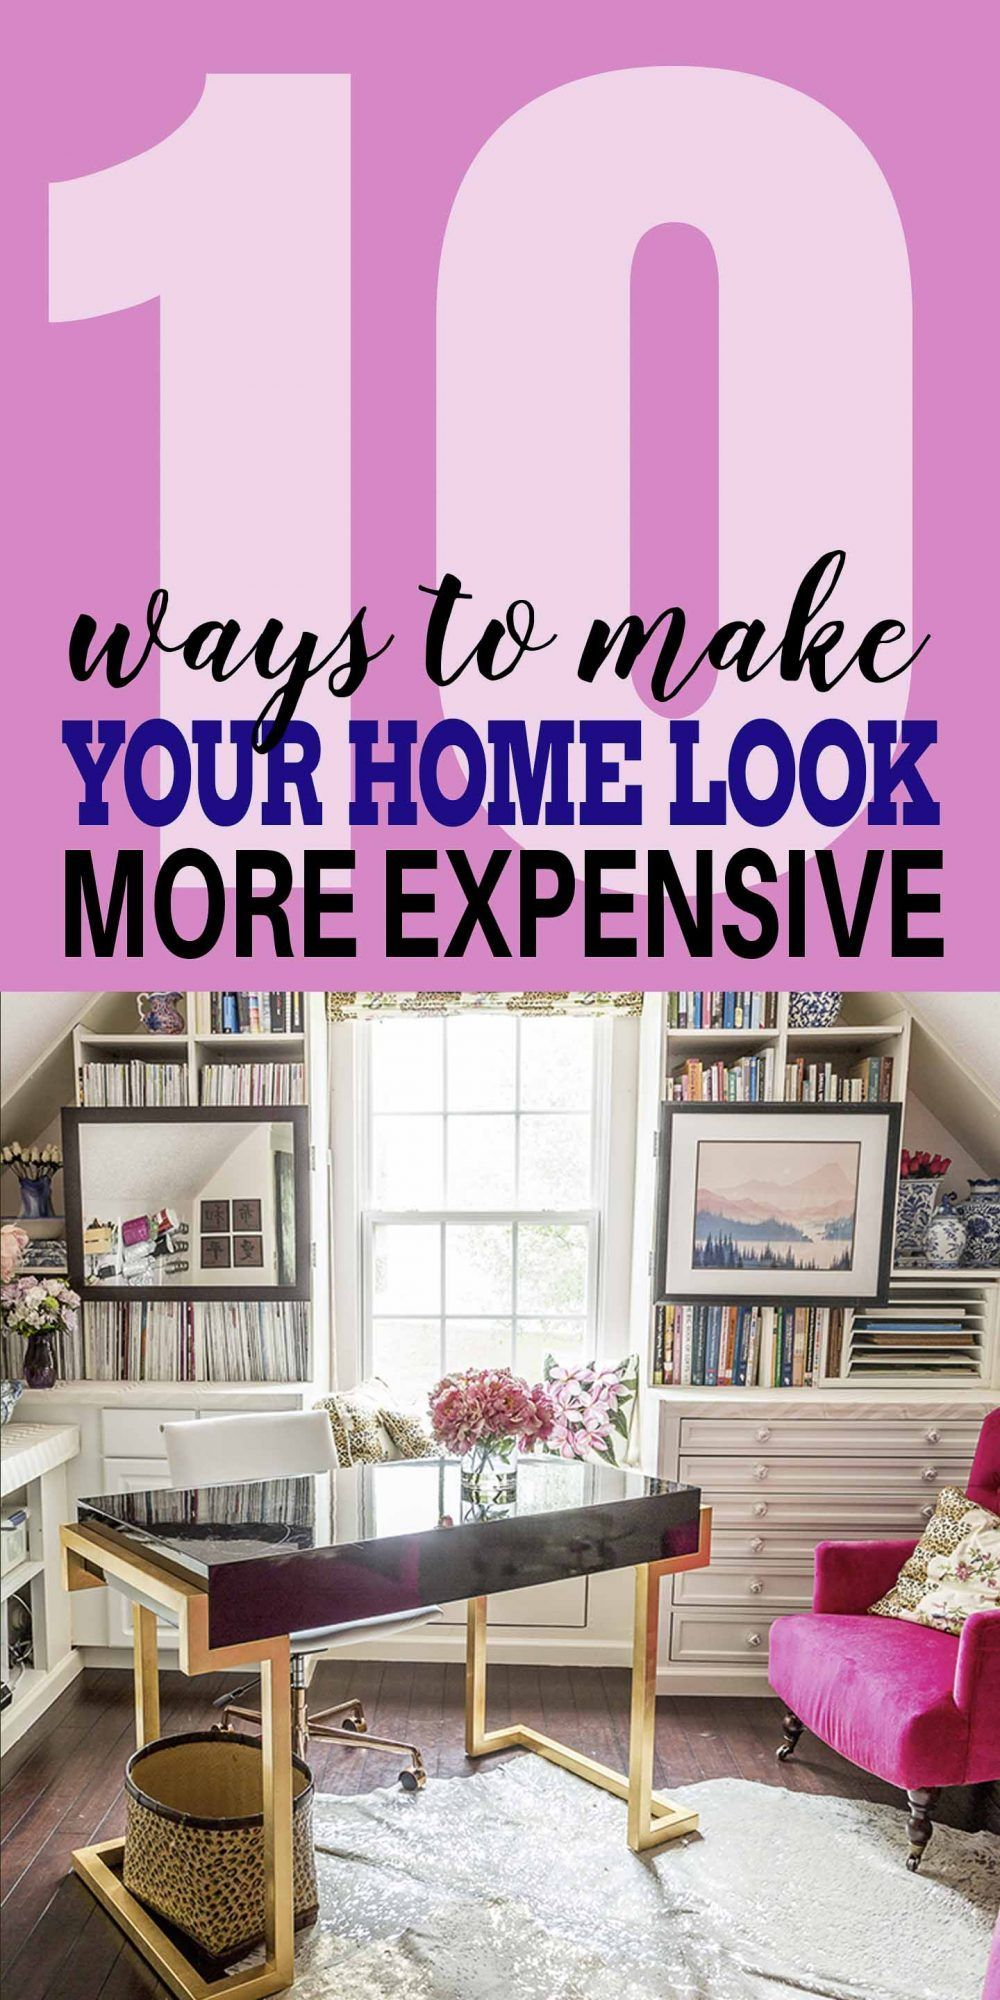 10 Easy Ways To Make Your House Look More Expensive Home Decor